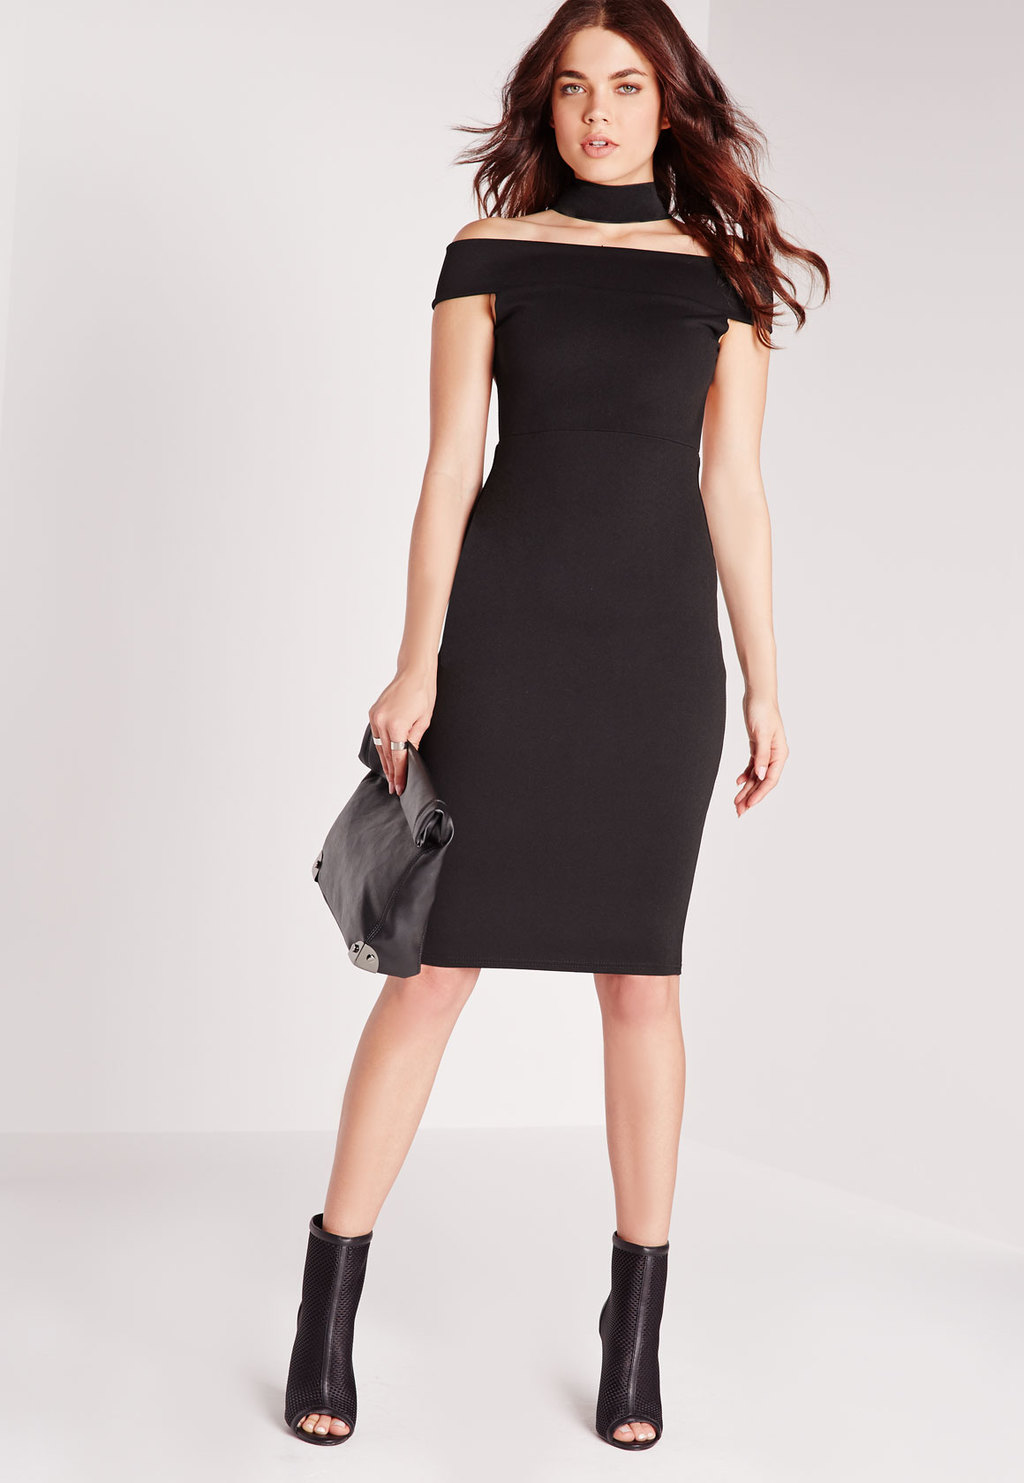 Elastic Neck Strap Detail Bodycon Dress Black, Black - neckline: off the shoulder; sleeve style: capped; fit: tight; pattern: plain; style: bodycon; hip detail: fitted at hip; predominant colour: black; occasions: evening; length: on the knee; fibres: polyester/polyamide - stretch; sleeve length: short sleeve; texture group: jersey - clingy; pattern type: fabric; season: s/s 2016